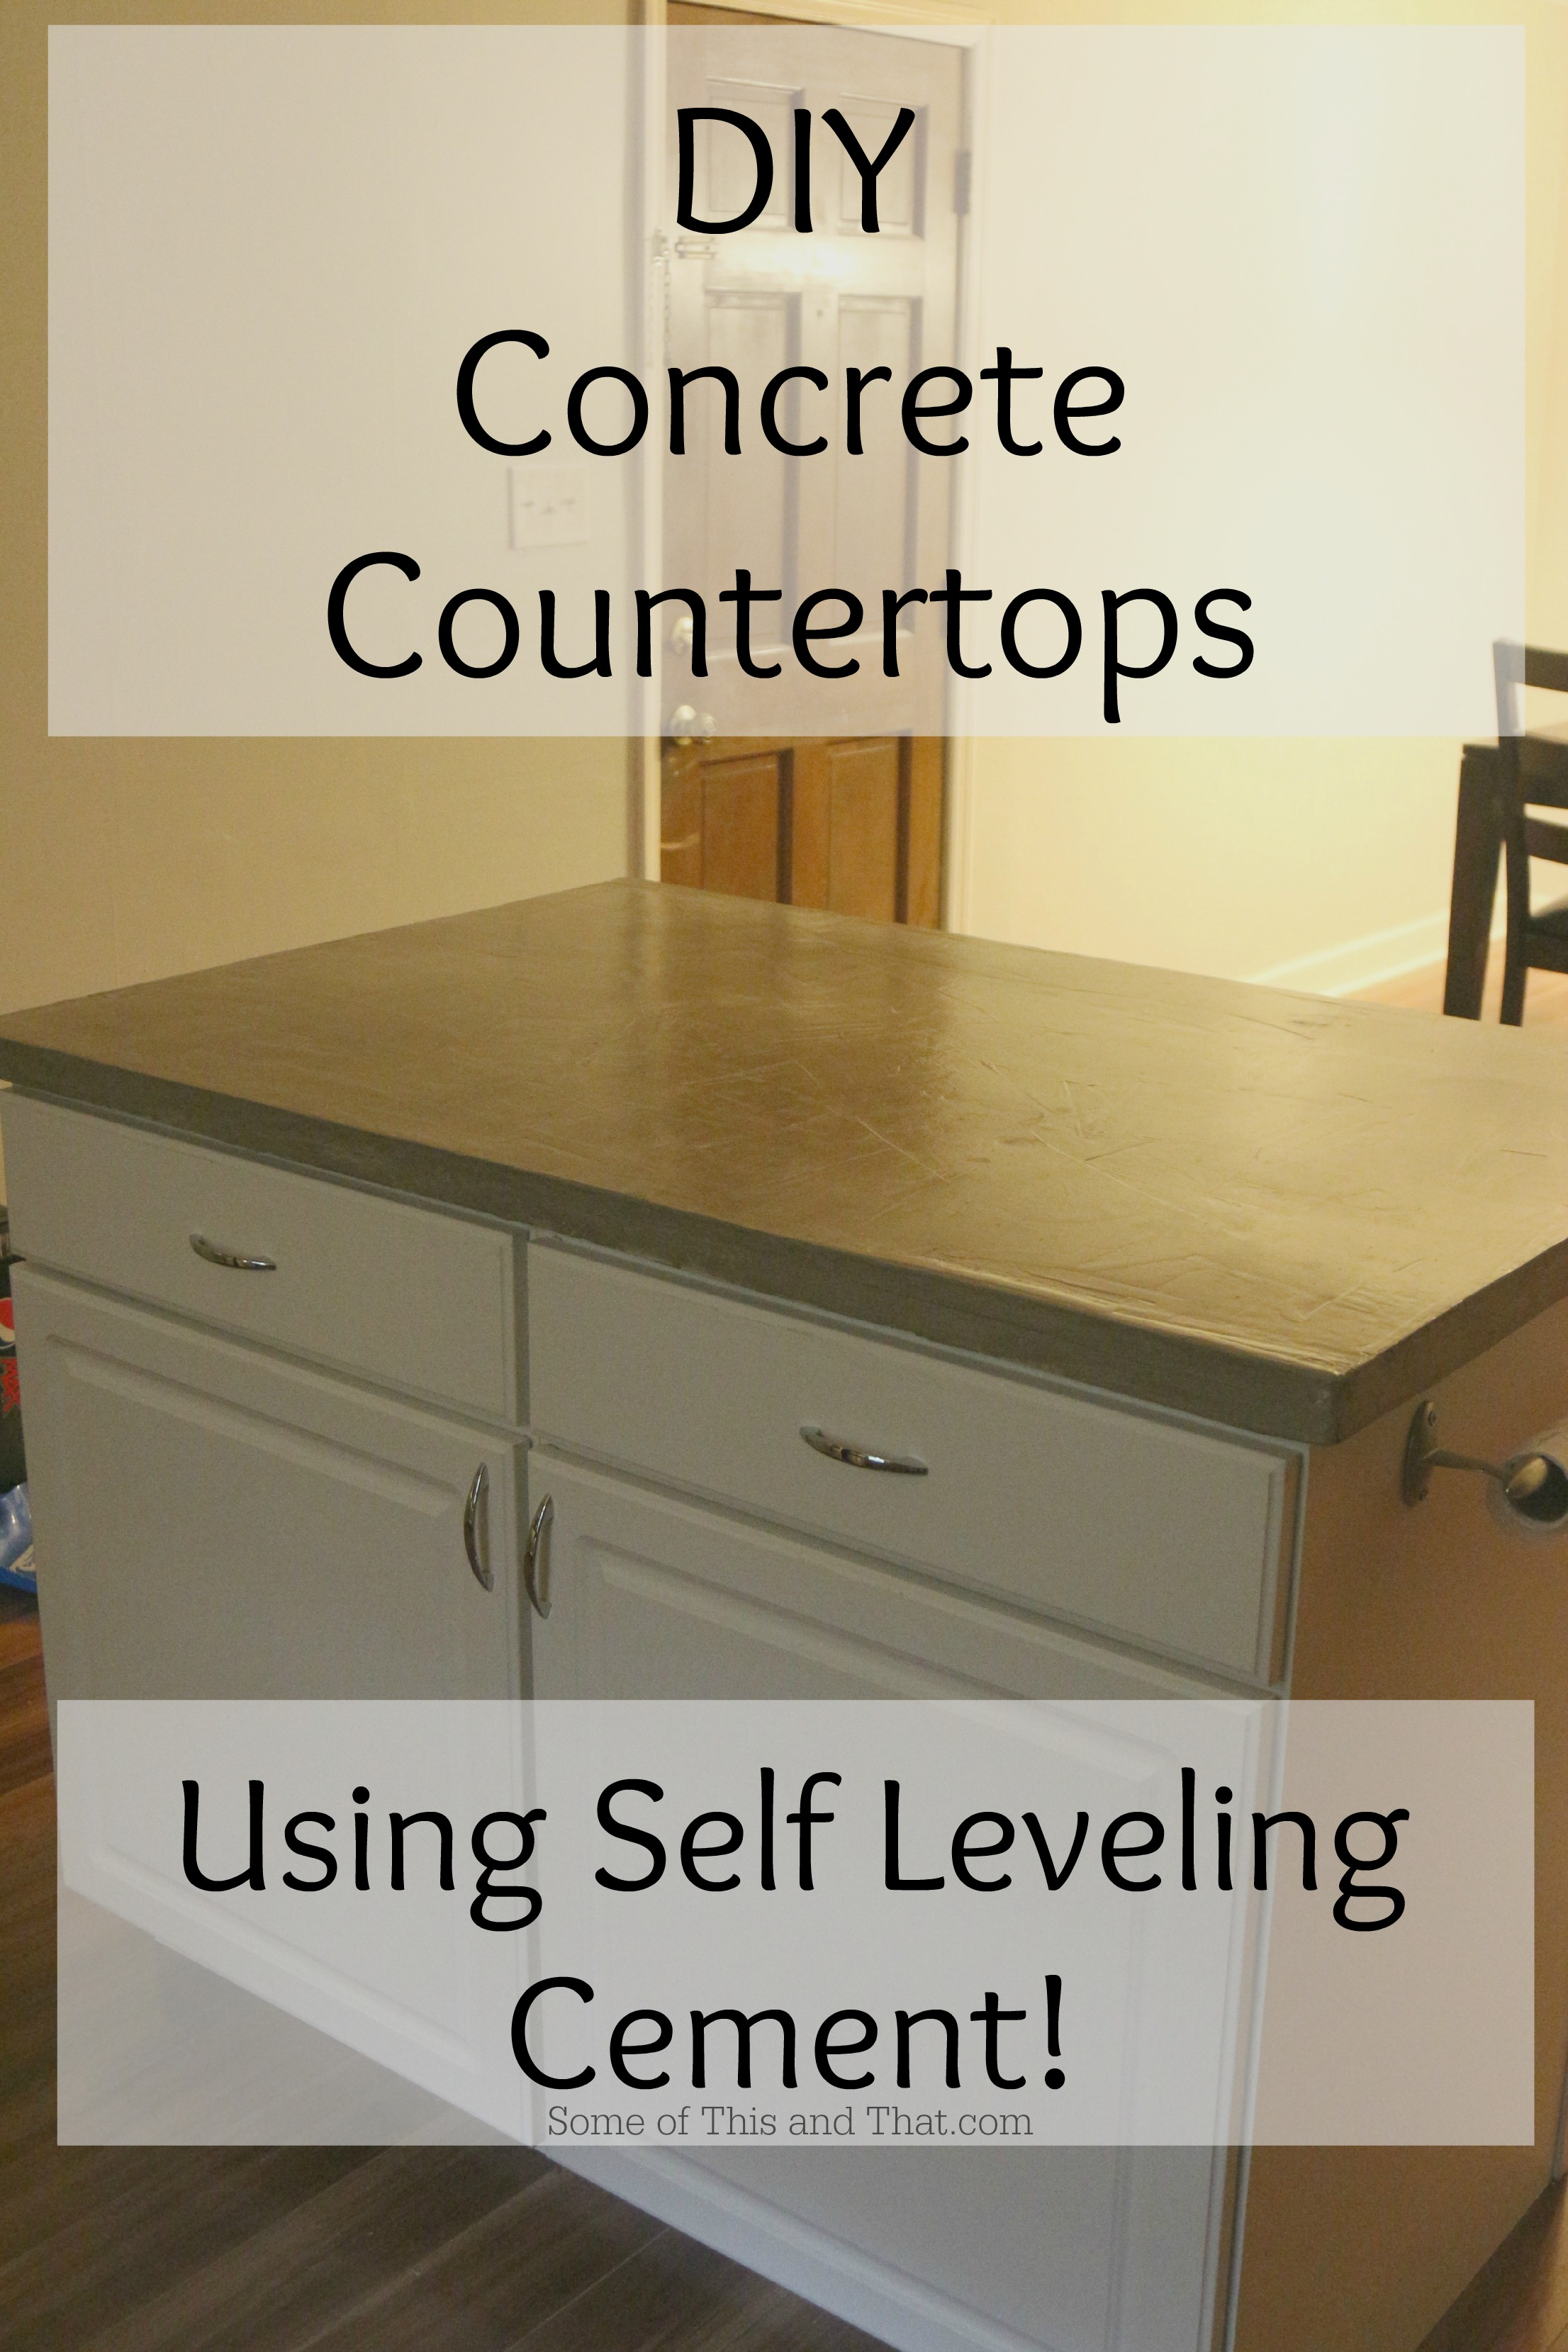 Diy concrete countertops using self leveling cement some of this diy concrete countertops using self leveling cement solutioingenieria